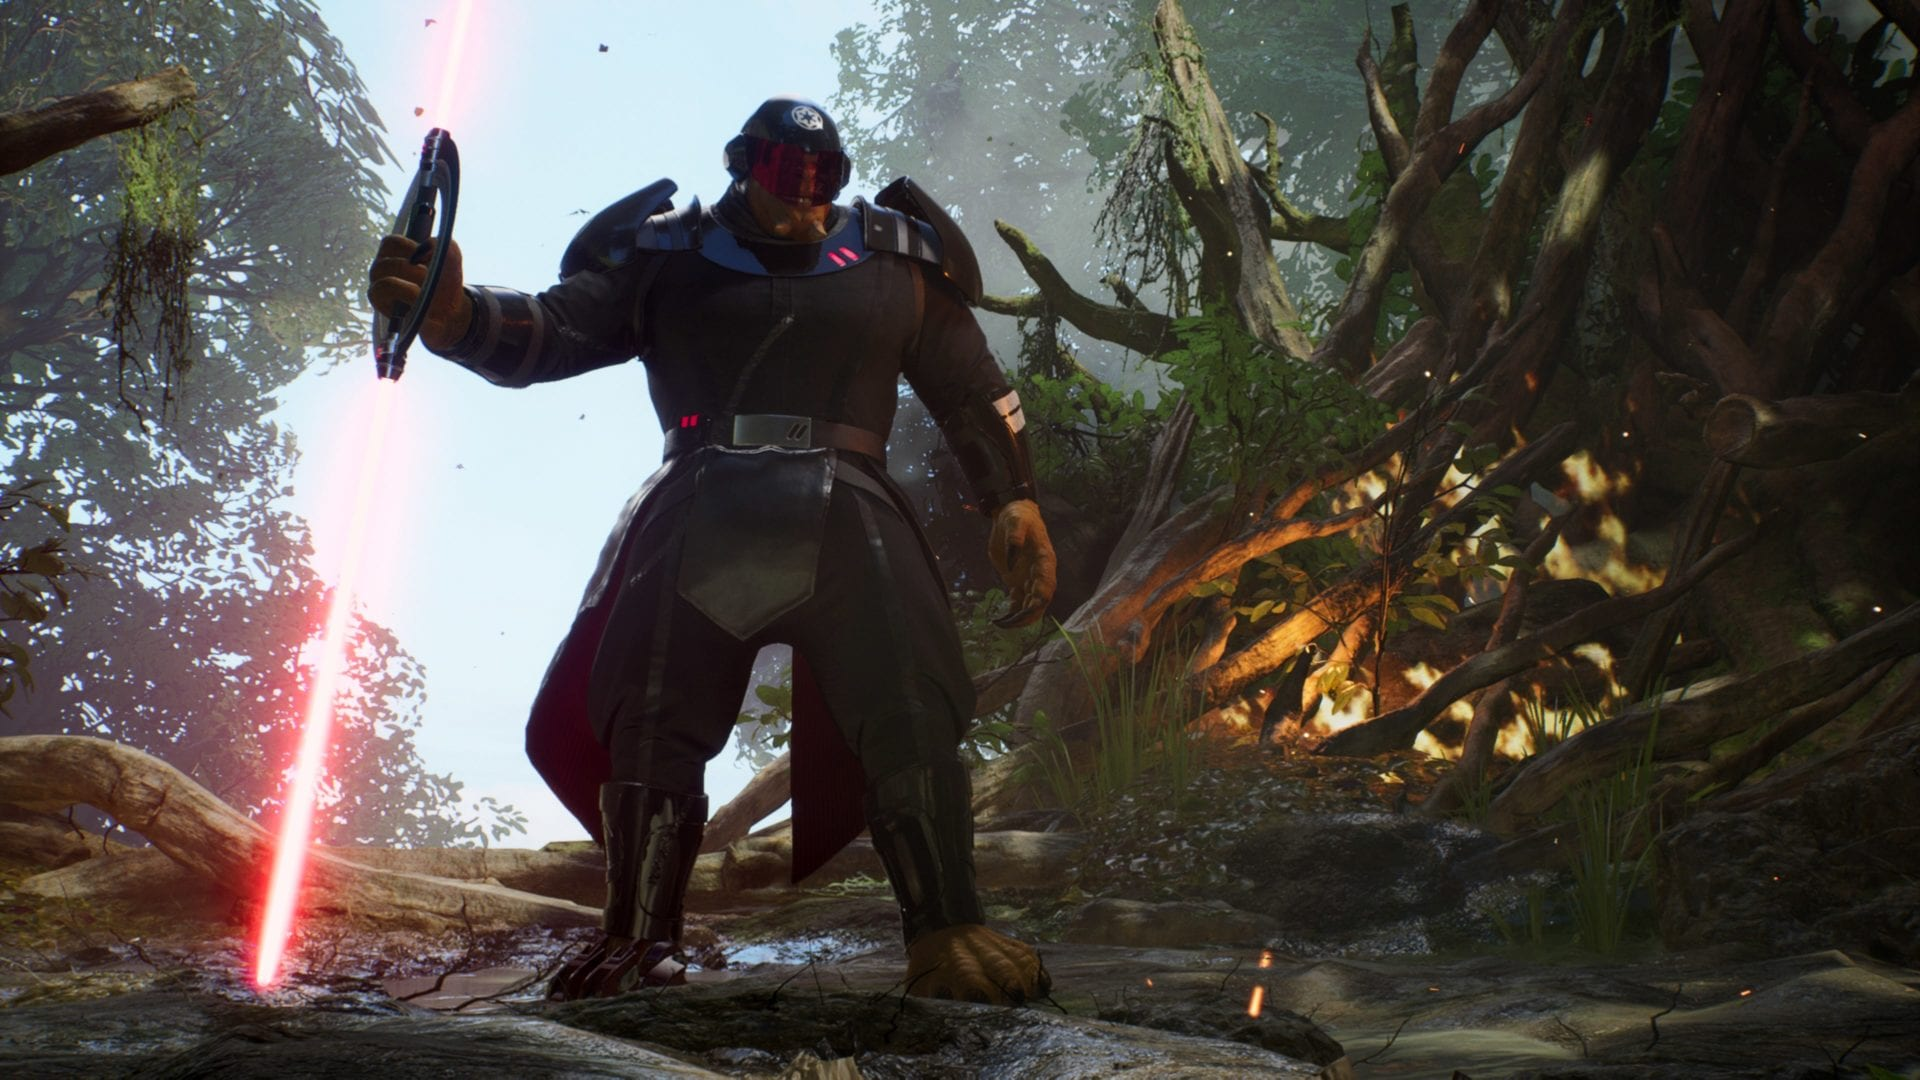 Star Wars Jedi: Fallen Order targets 60fps on enhanced consoles